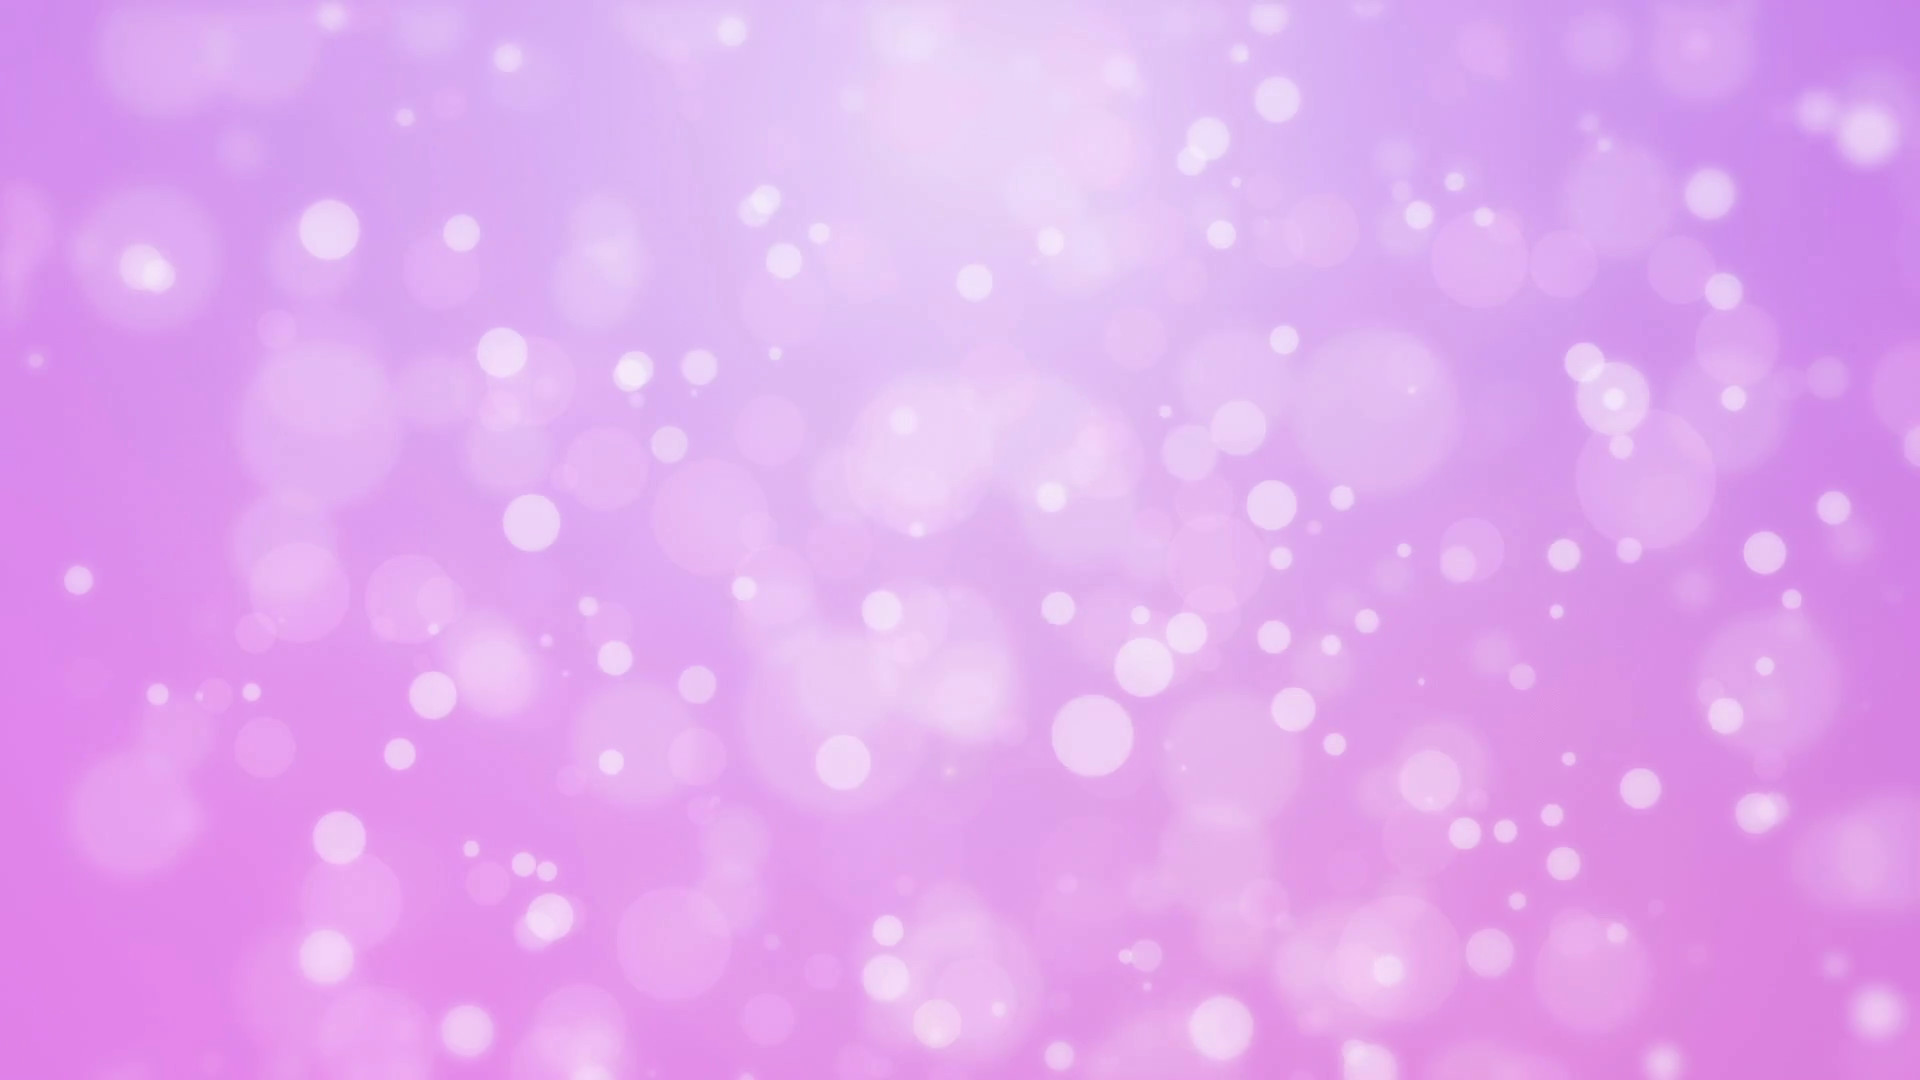 Subscription Library Sweet romantic purple pink gradient animated background  with floating glowing bokeh lights